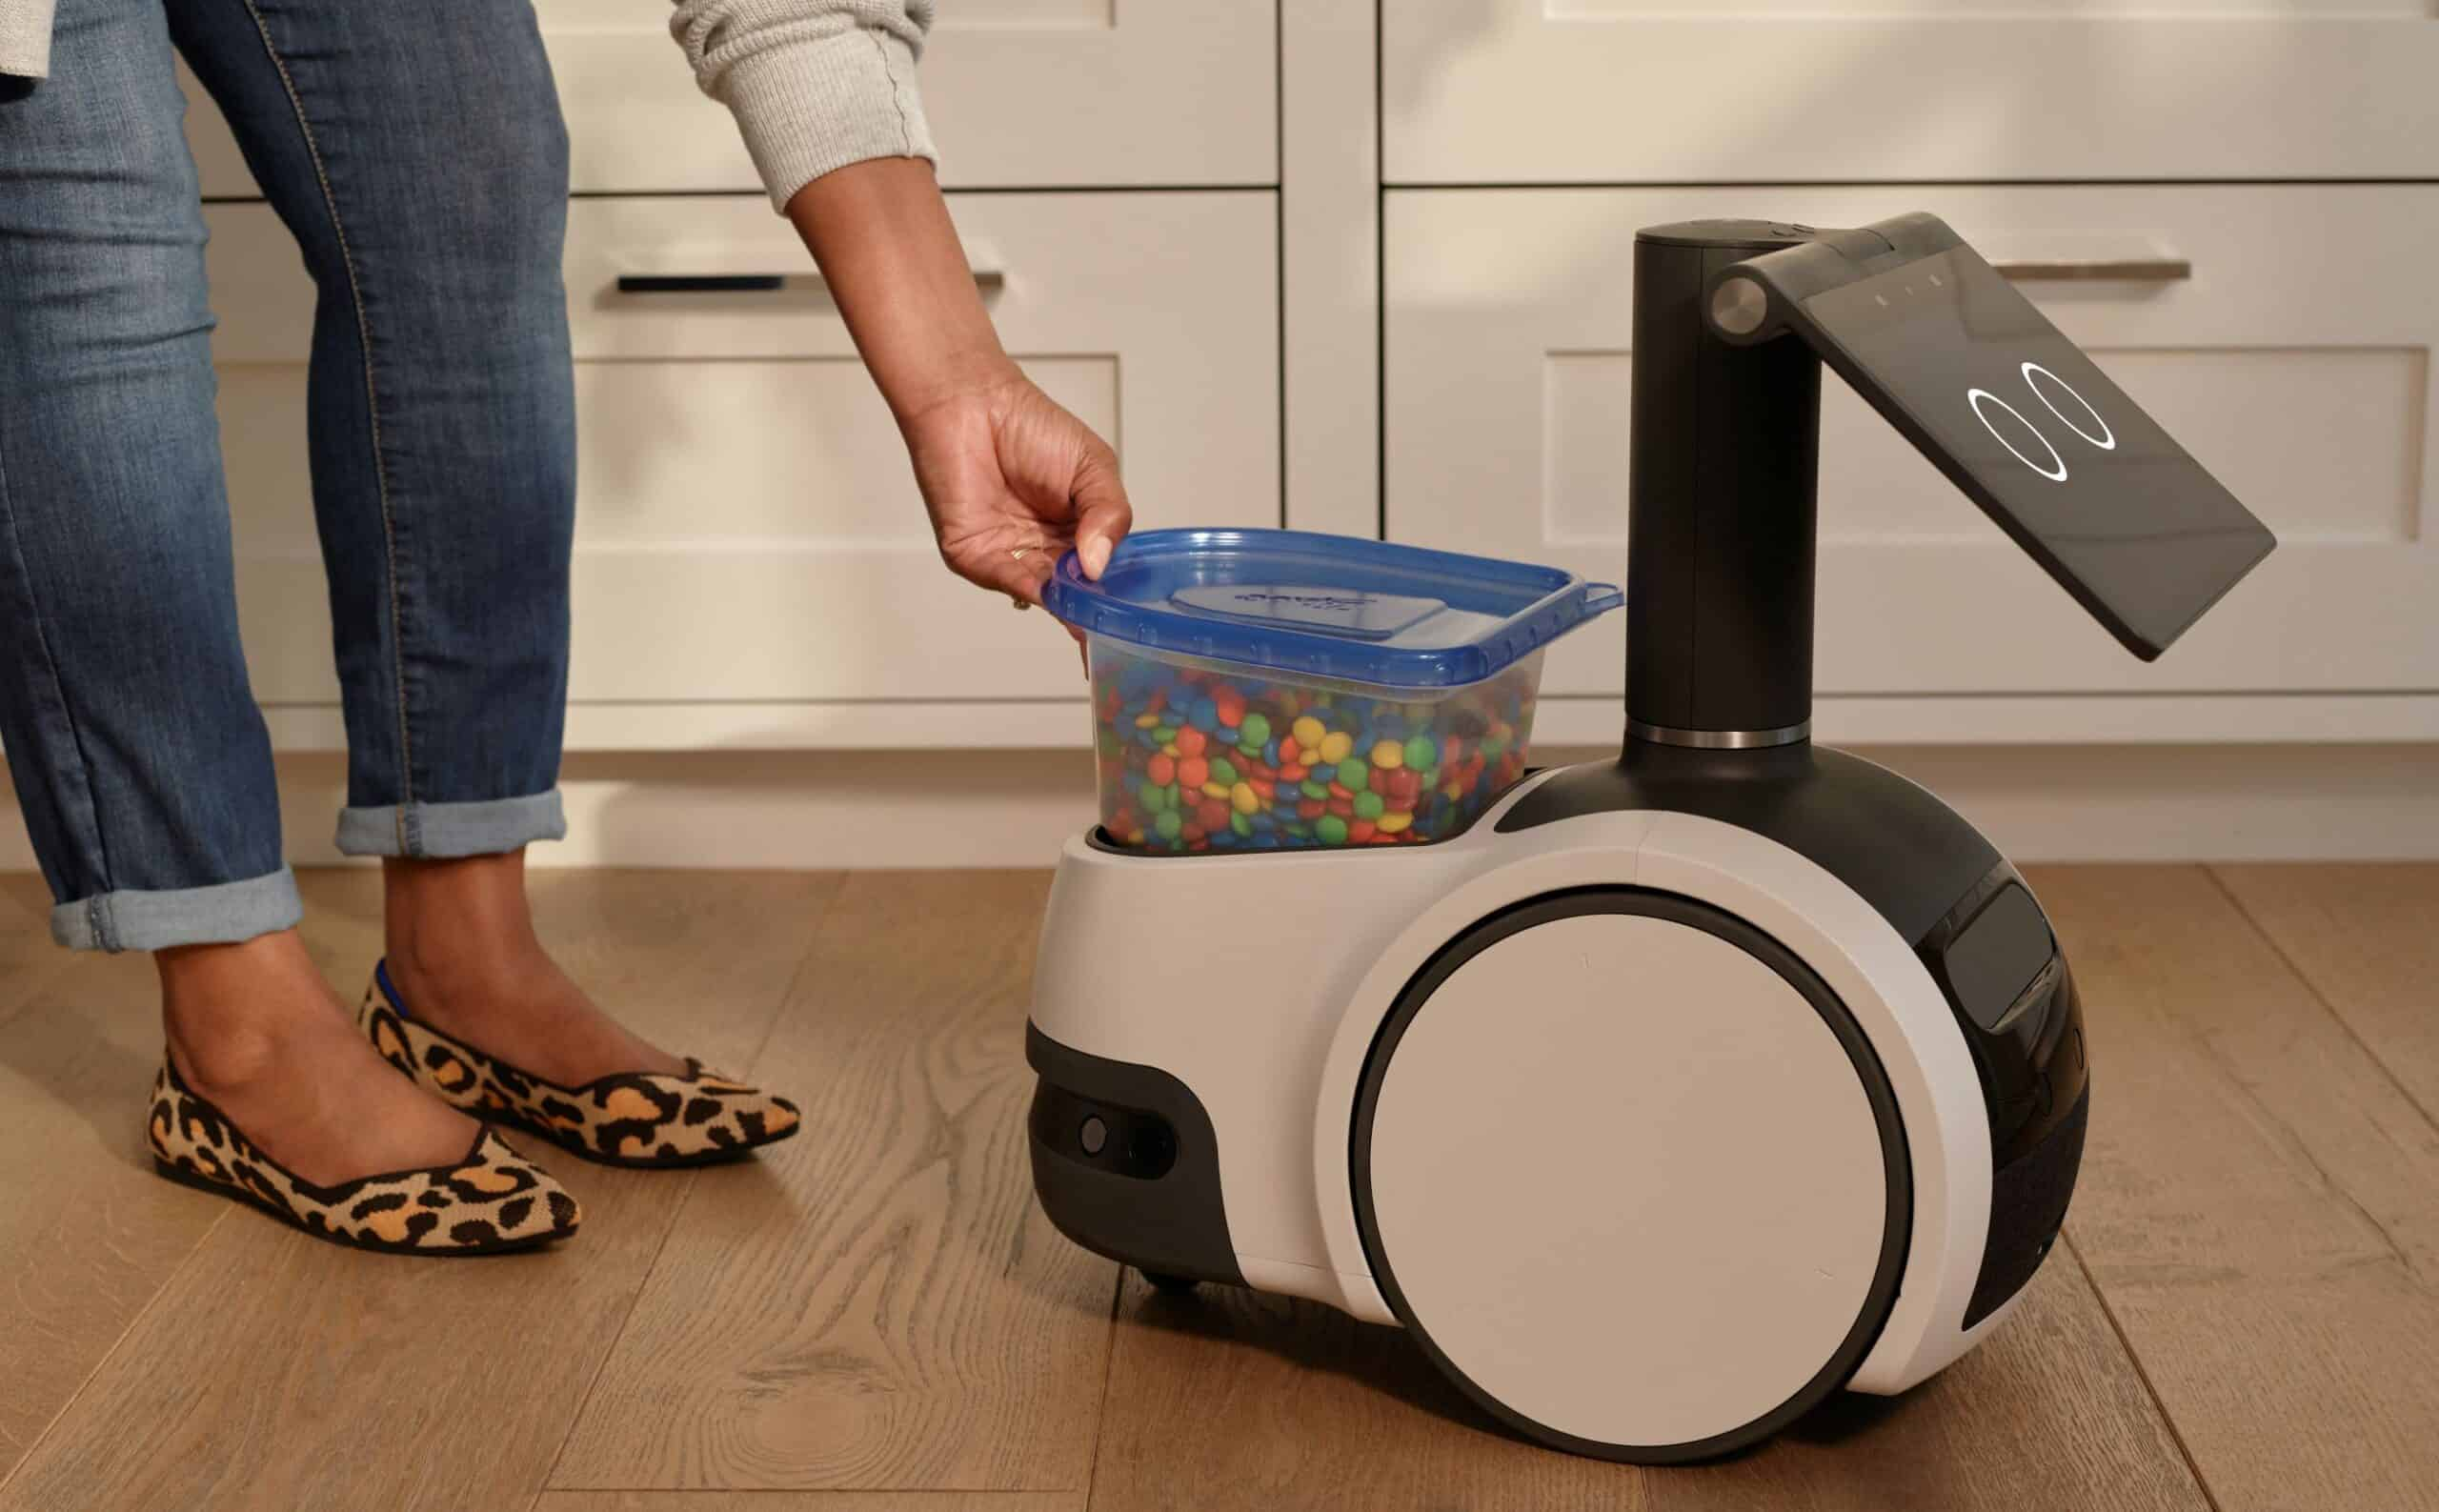 Astro can deliver food and other products from one room to another. (Photo: Amazon)